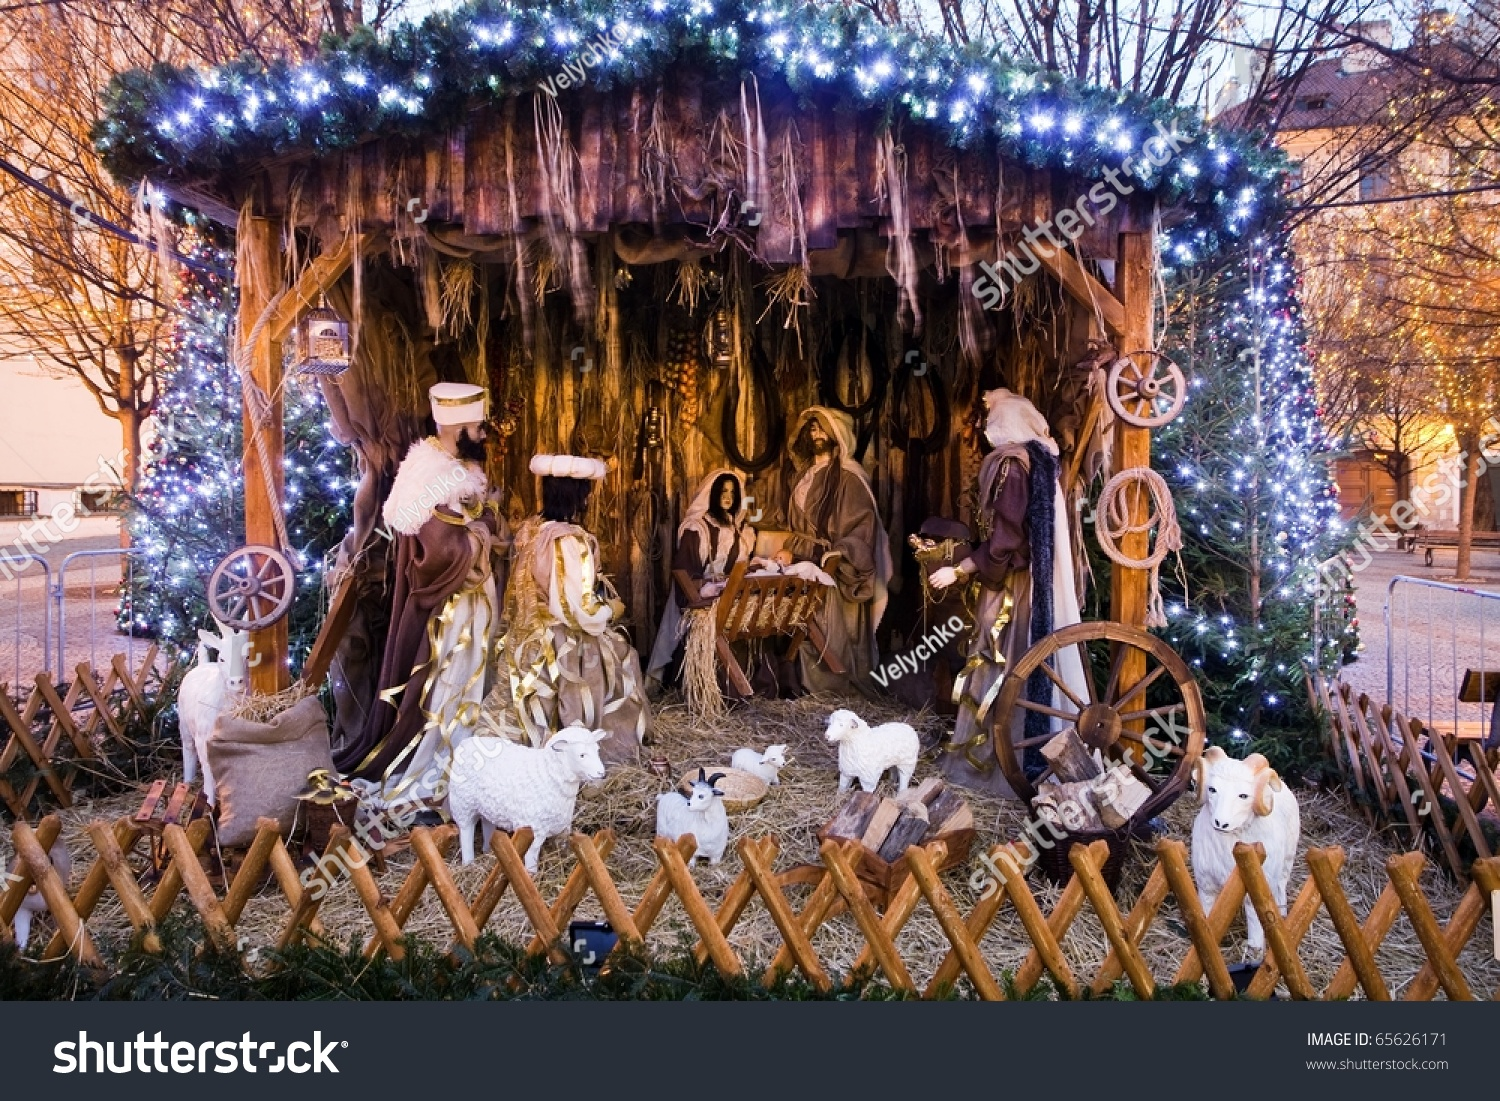 Christmas Nativity Scene With Three Wise Men Presenting